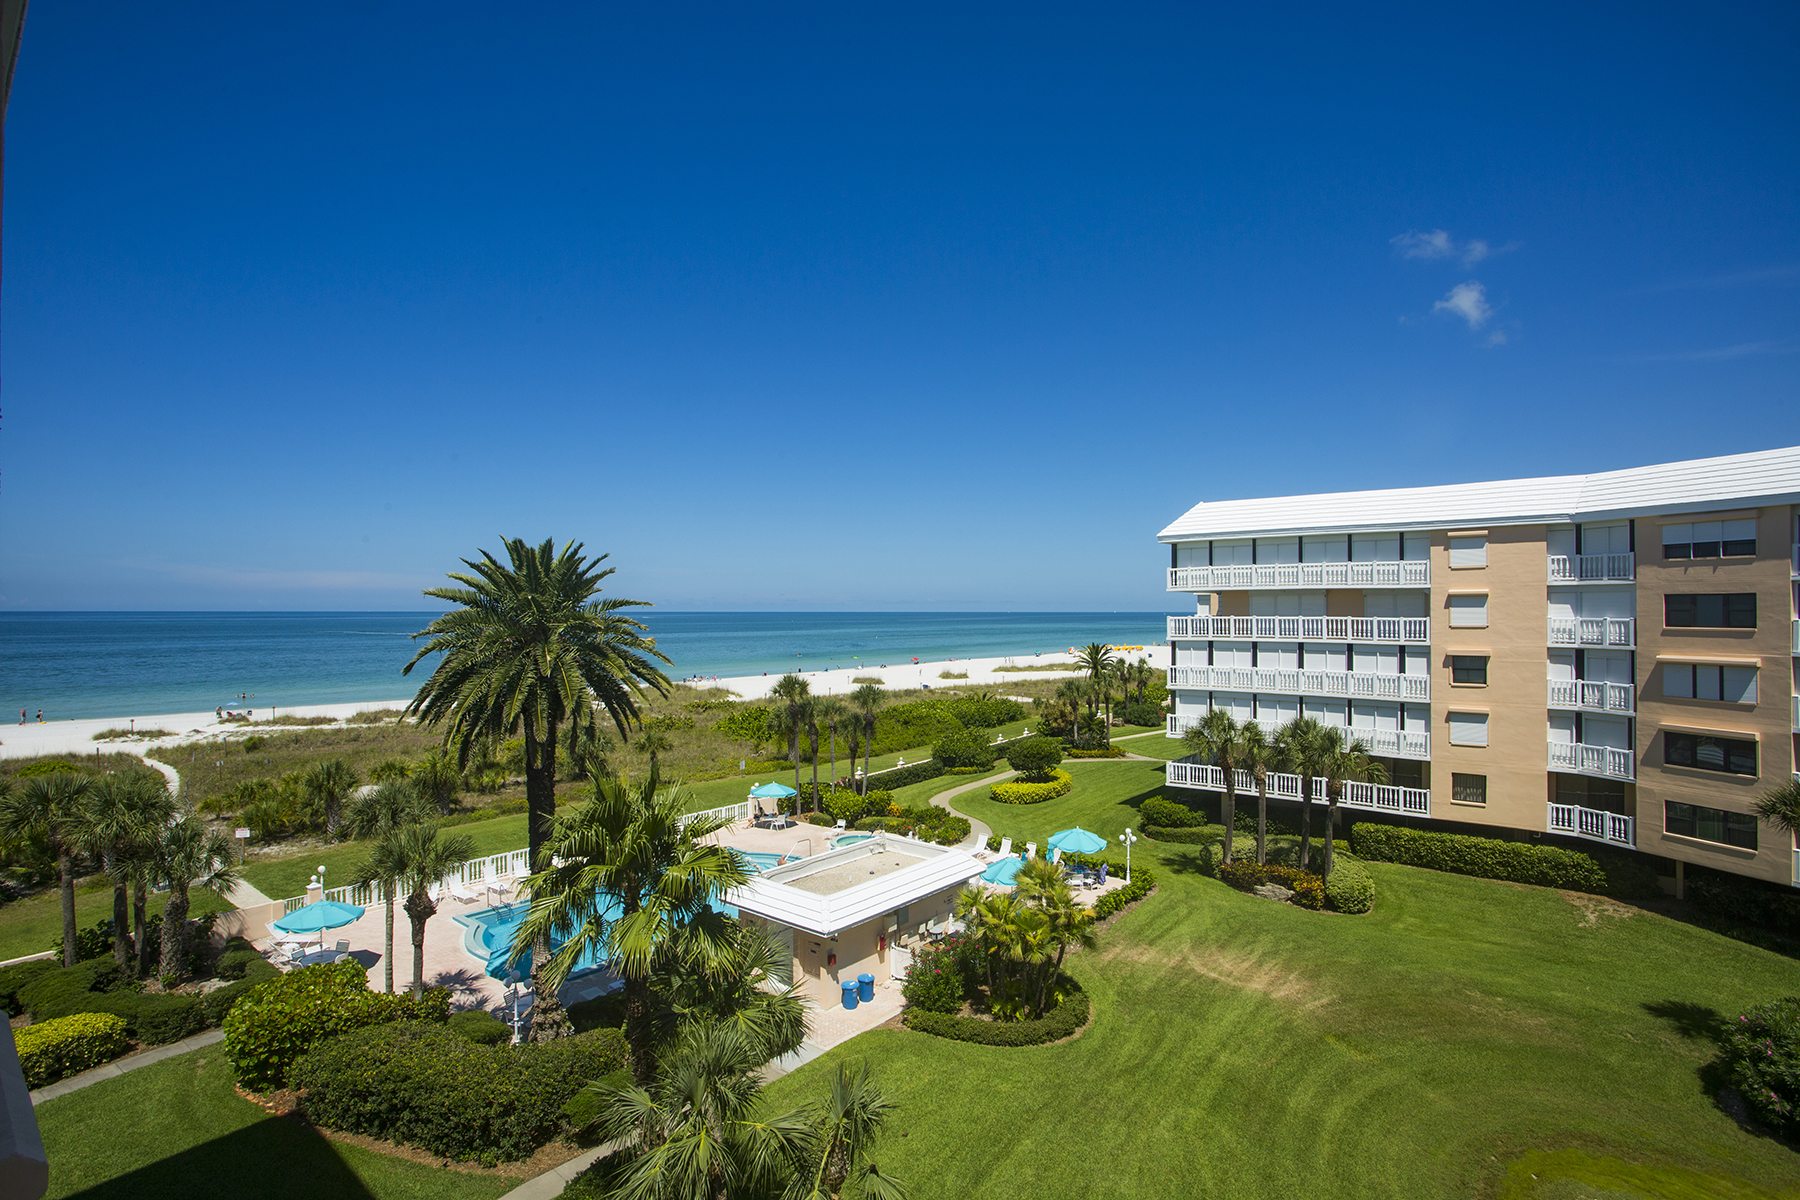 Condominium for Sale at ST PETE BEACH 6500 Sunset Way 419 St. Pete Beach, Florida, 33706 United States